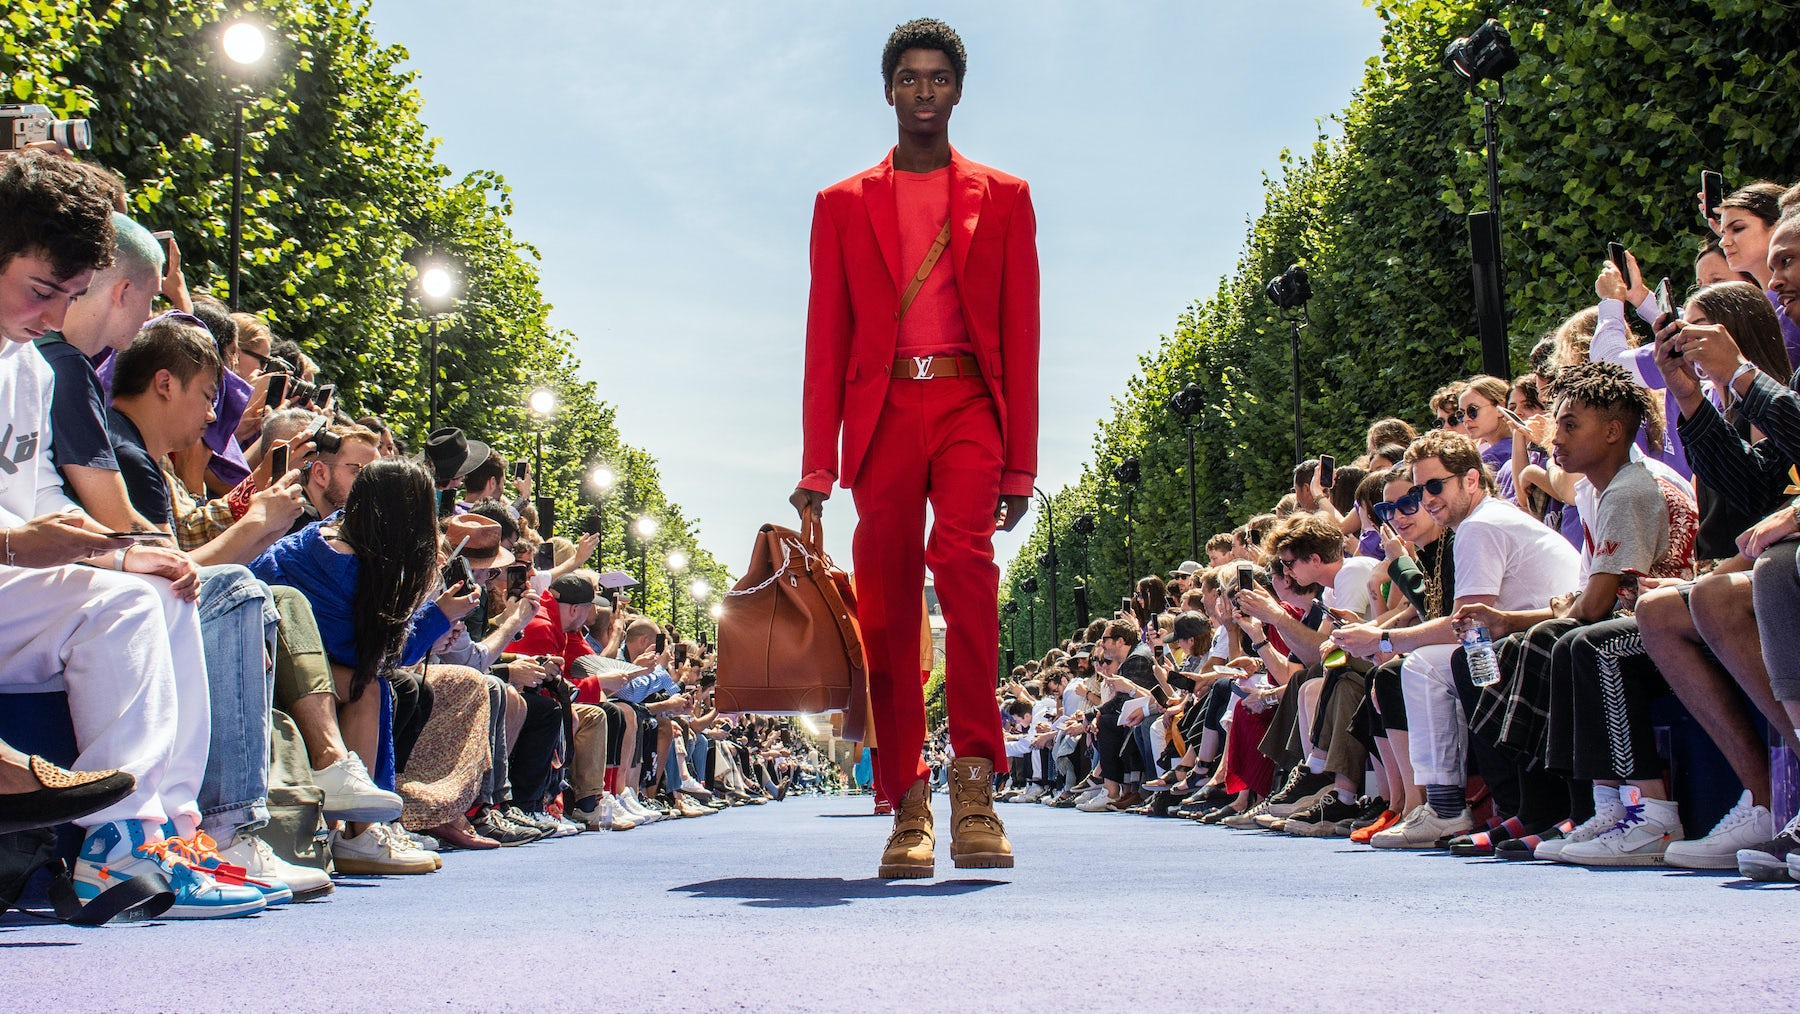 Louis Vuitton Spring/Summer 2019 | Source: Peter White/Getty Images